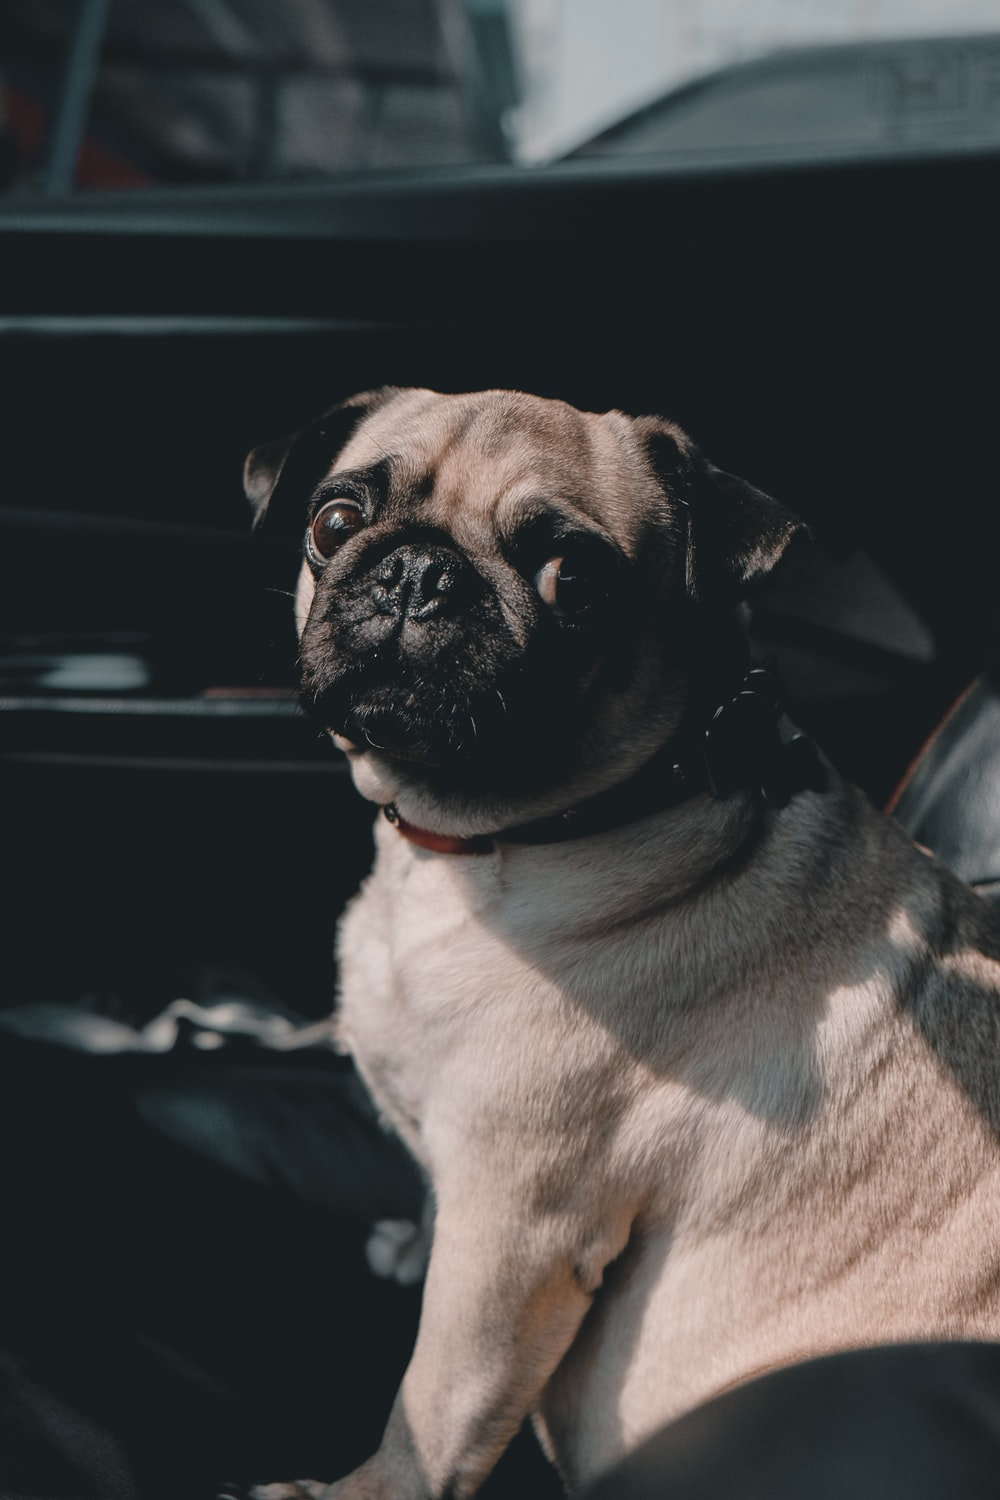 selective focus photography of adult fawn pug sitting inside vehicle